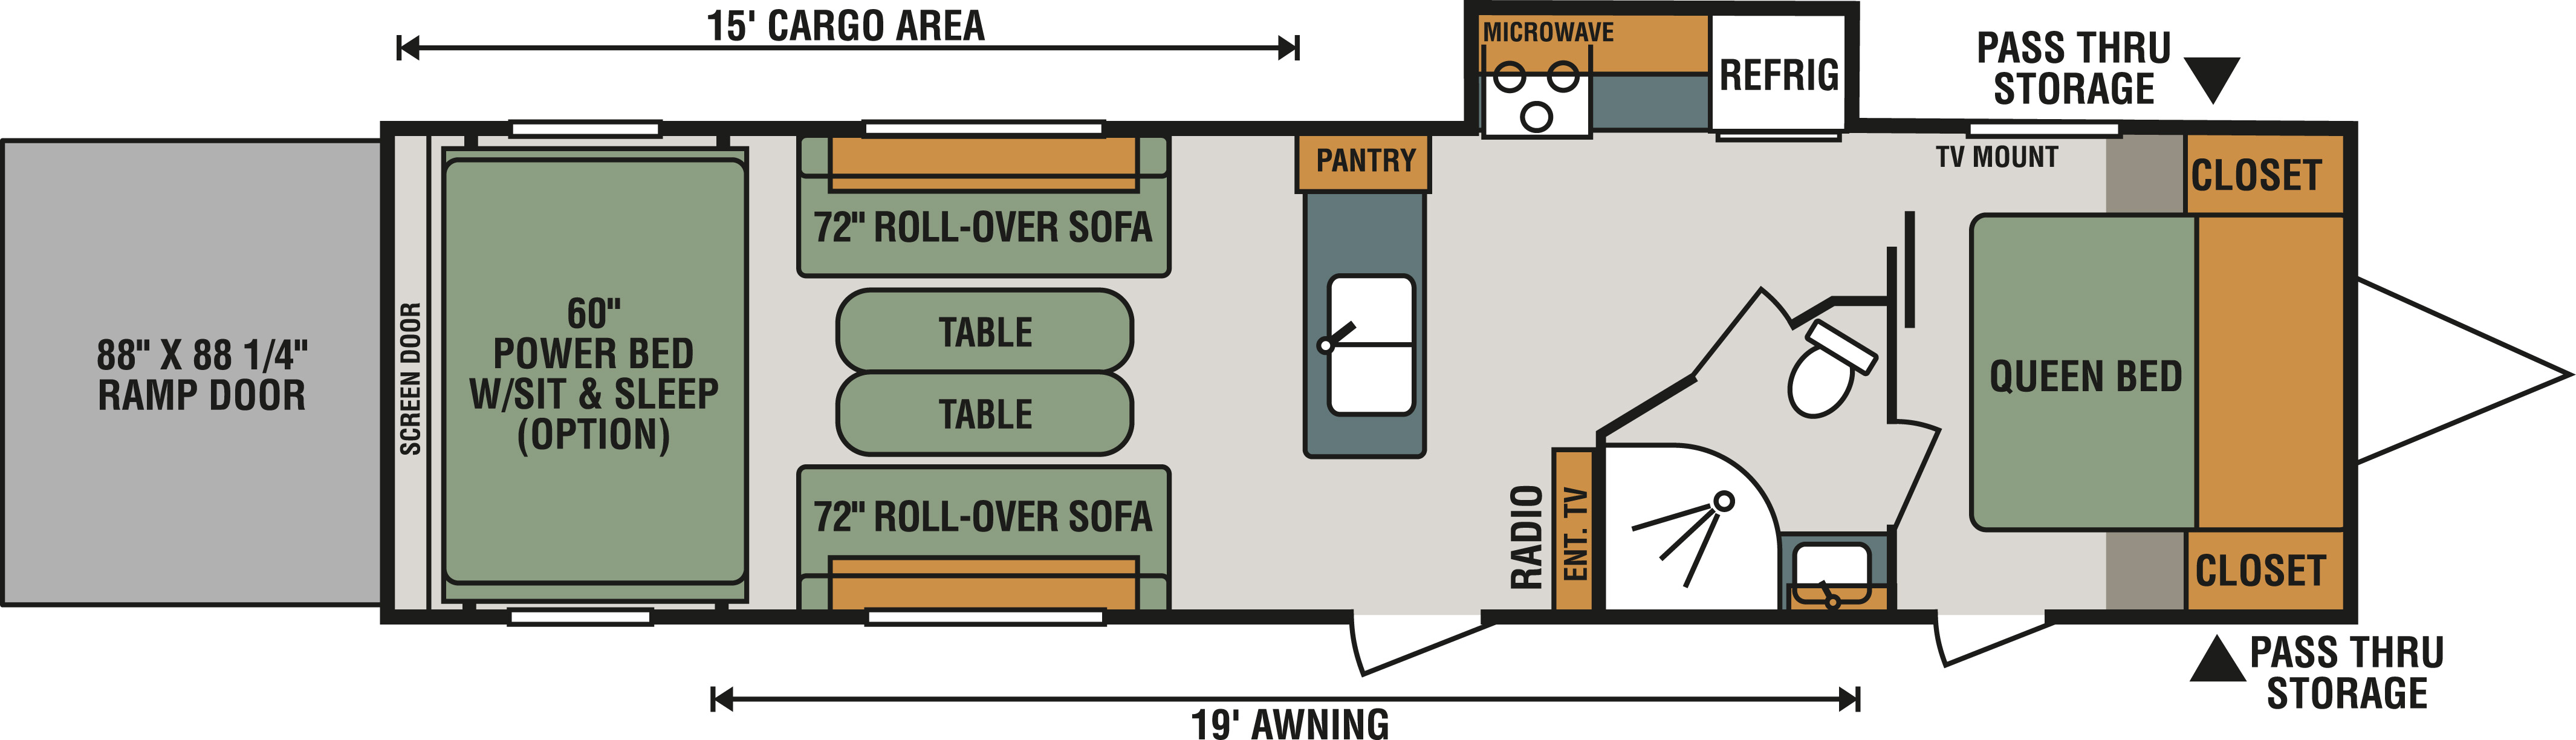 301THR Floorplan